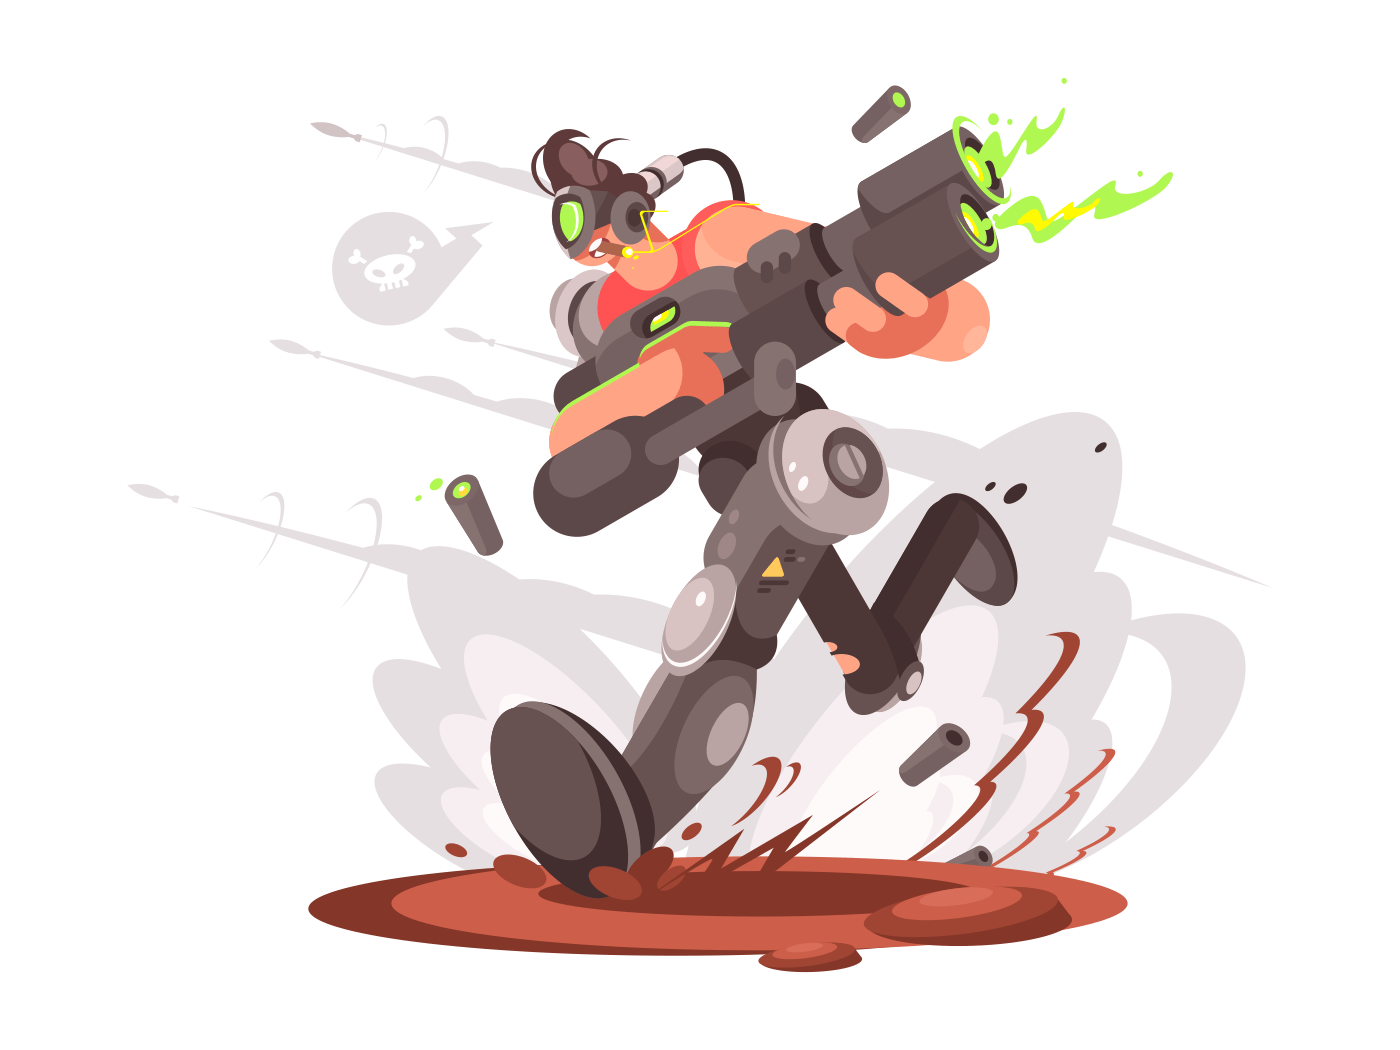 Soldier of the future runs with blaster in virtual world. Vector illustration